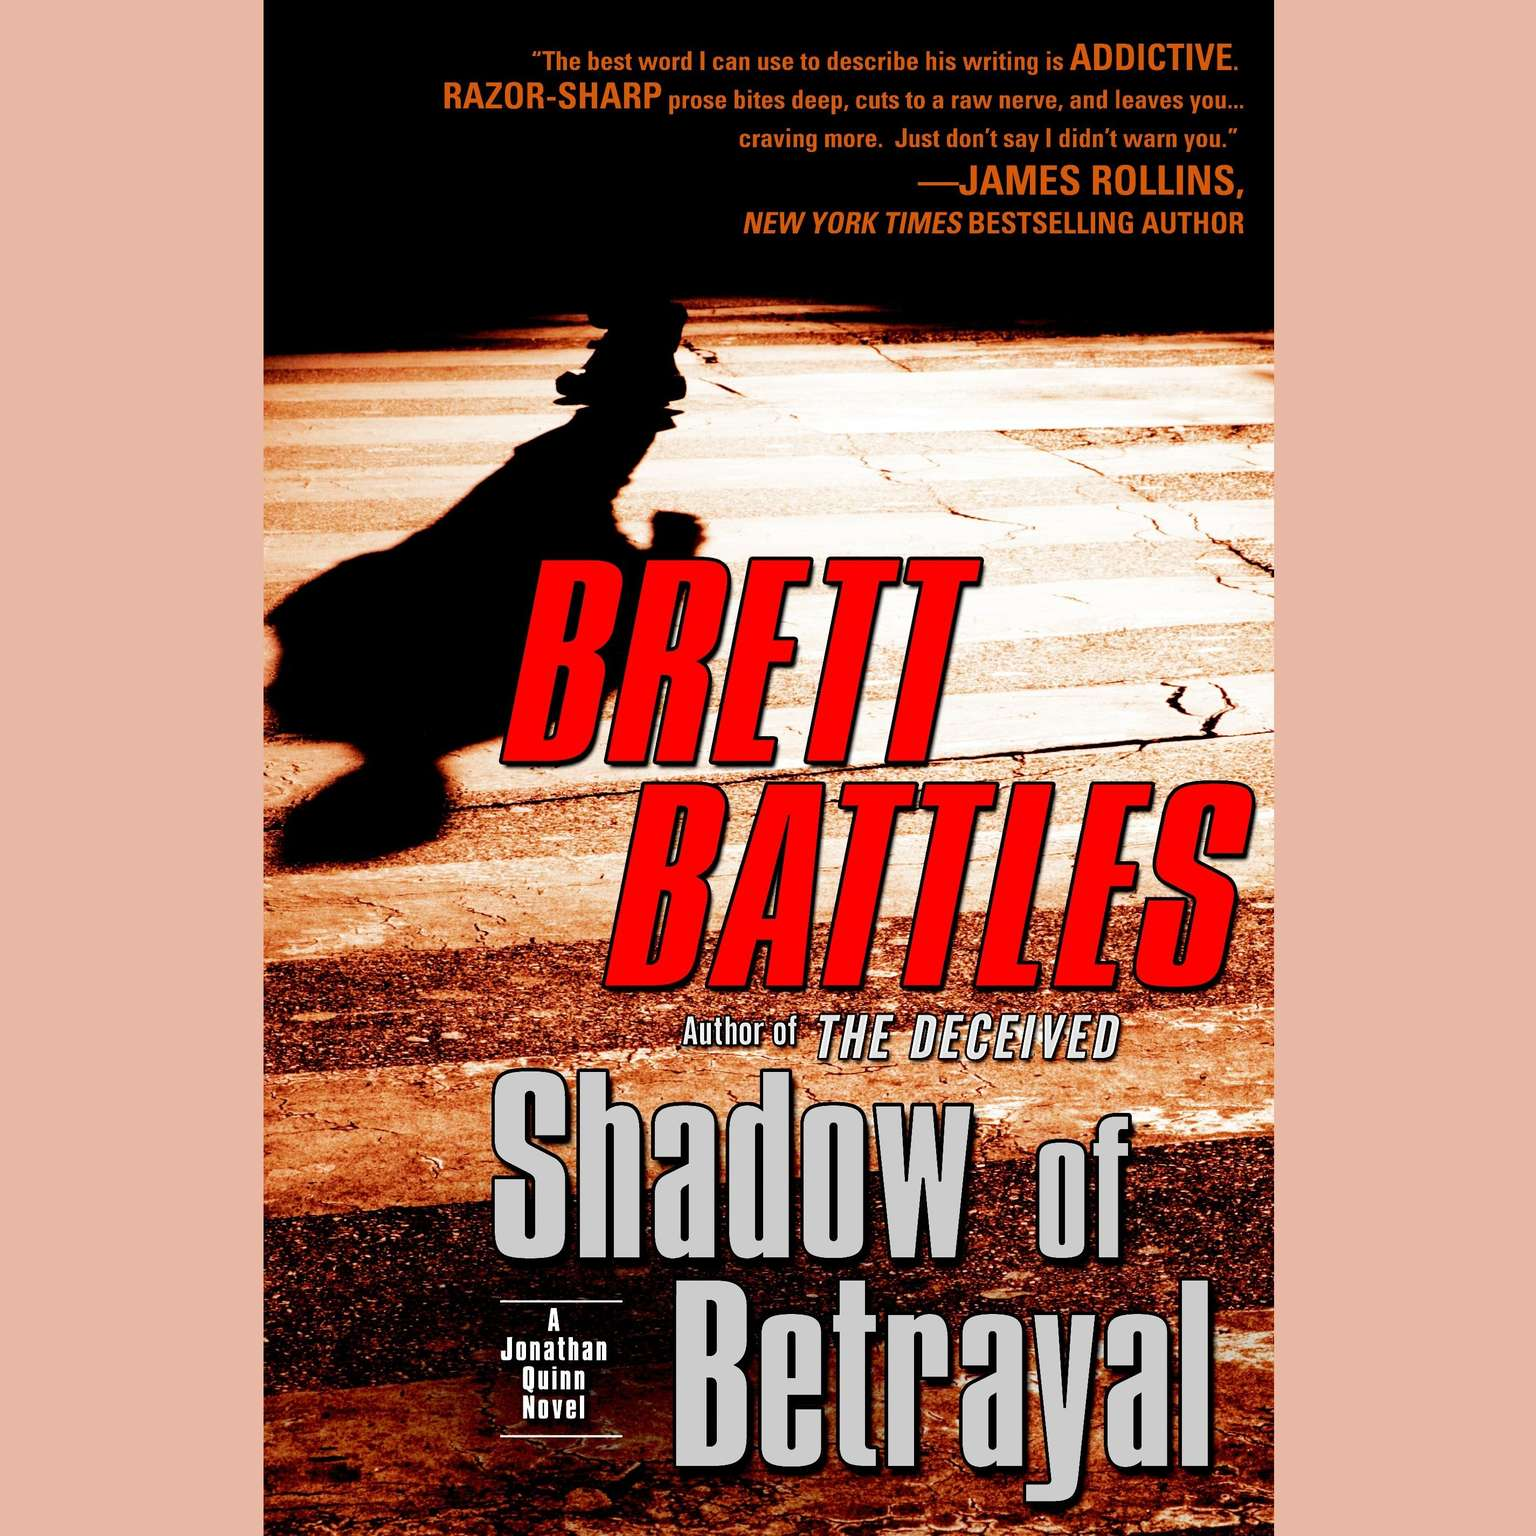 Printable Shadow of Betrayal Audiobook Cover Art